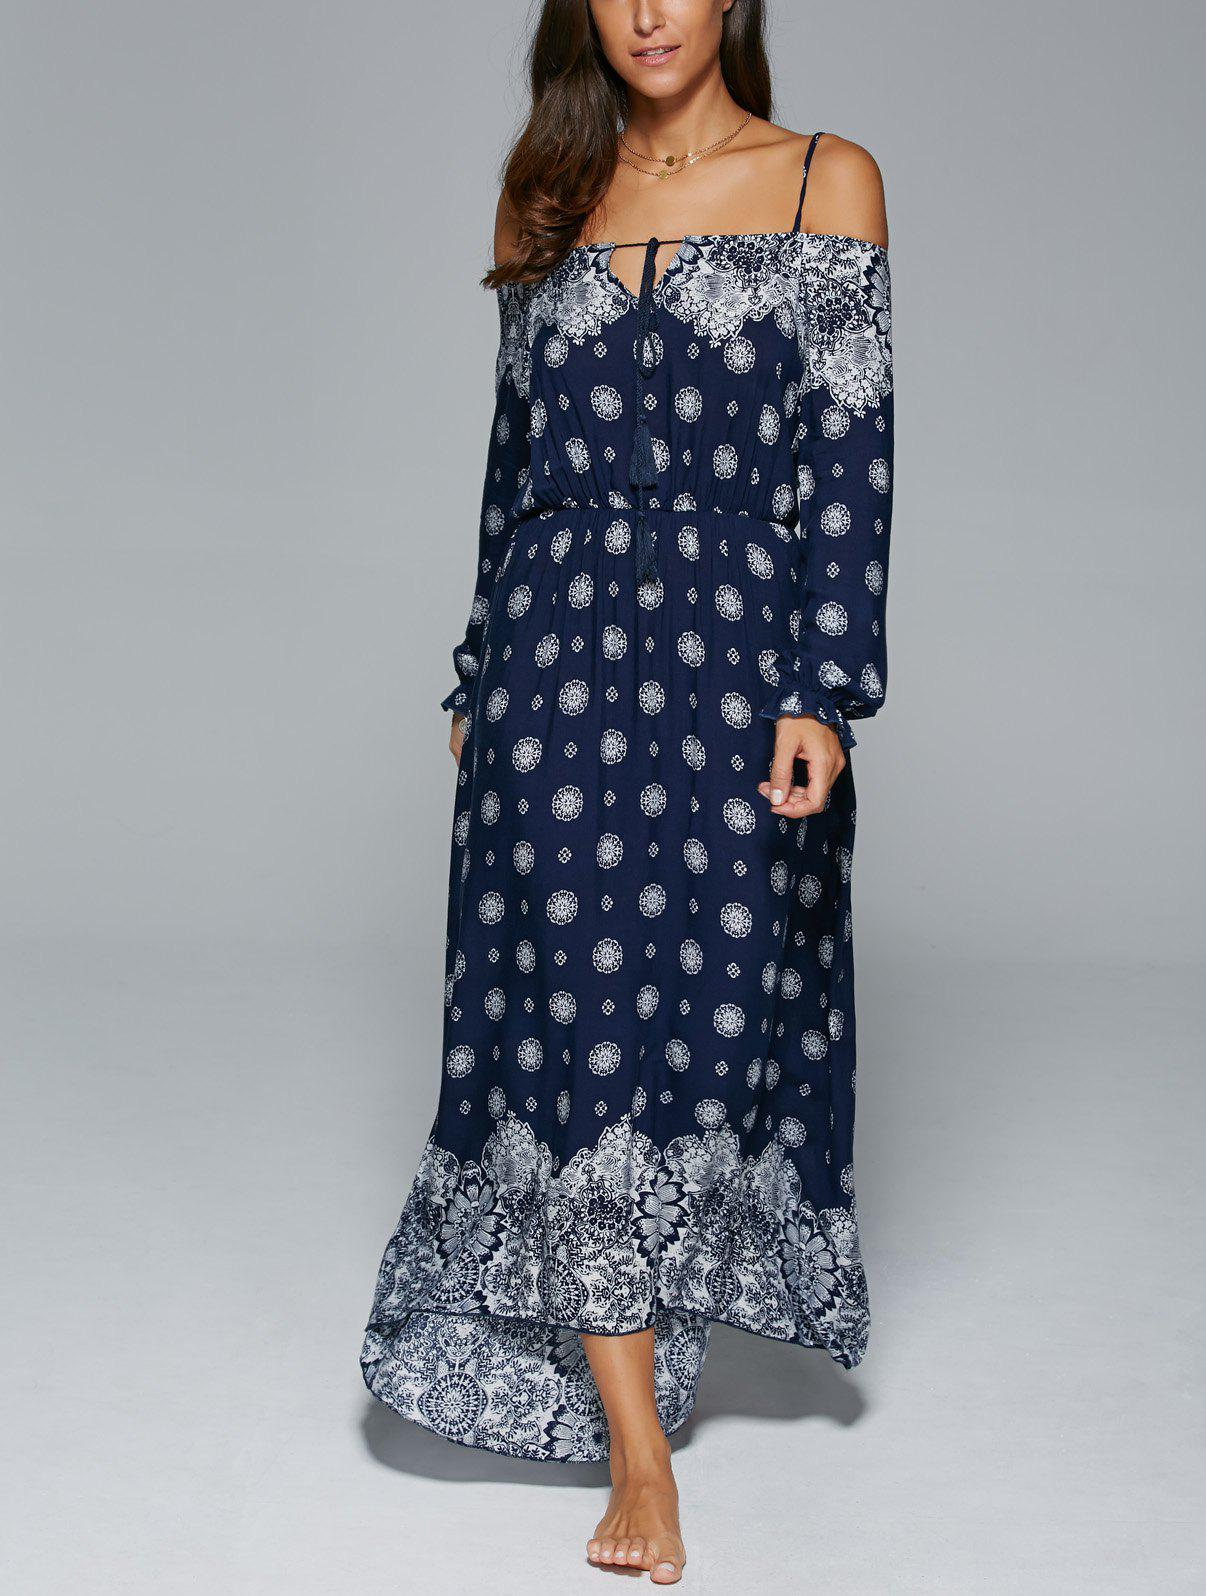 Bohemian Spaghetti Strap Tribal Print Maxi Dress - PURPLISH BLUE XL